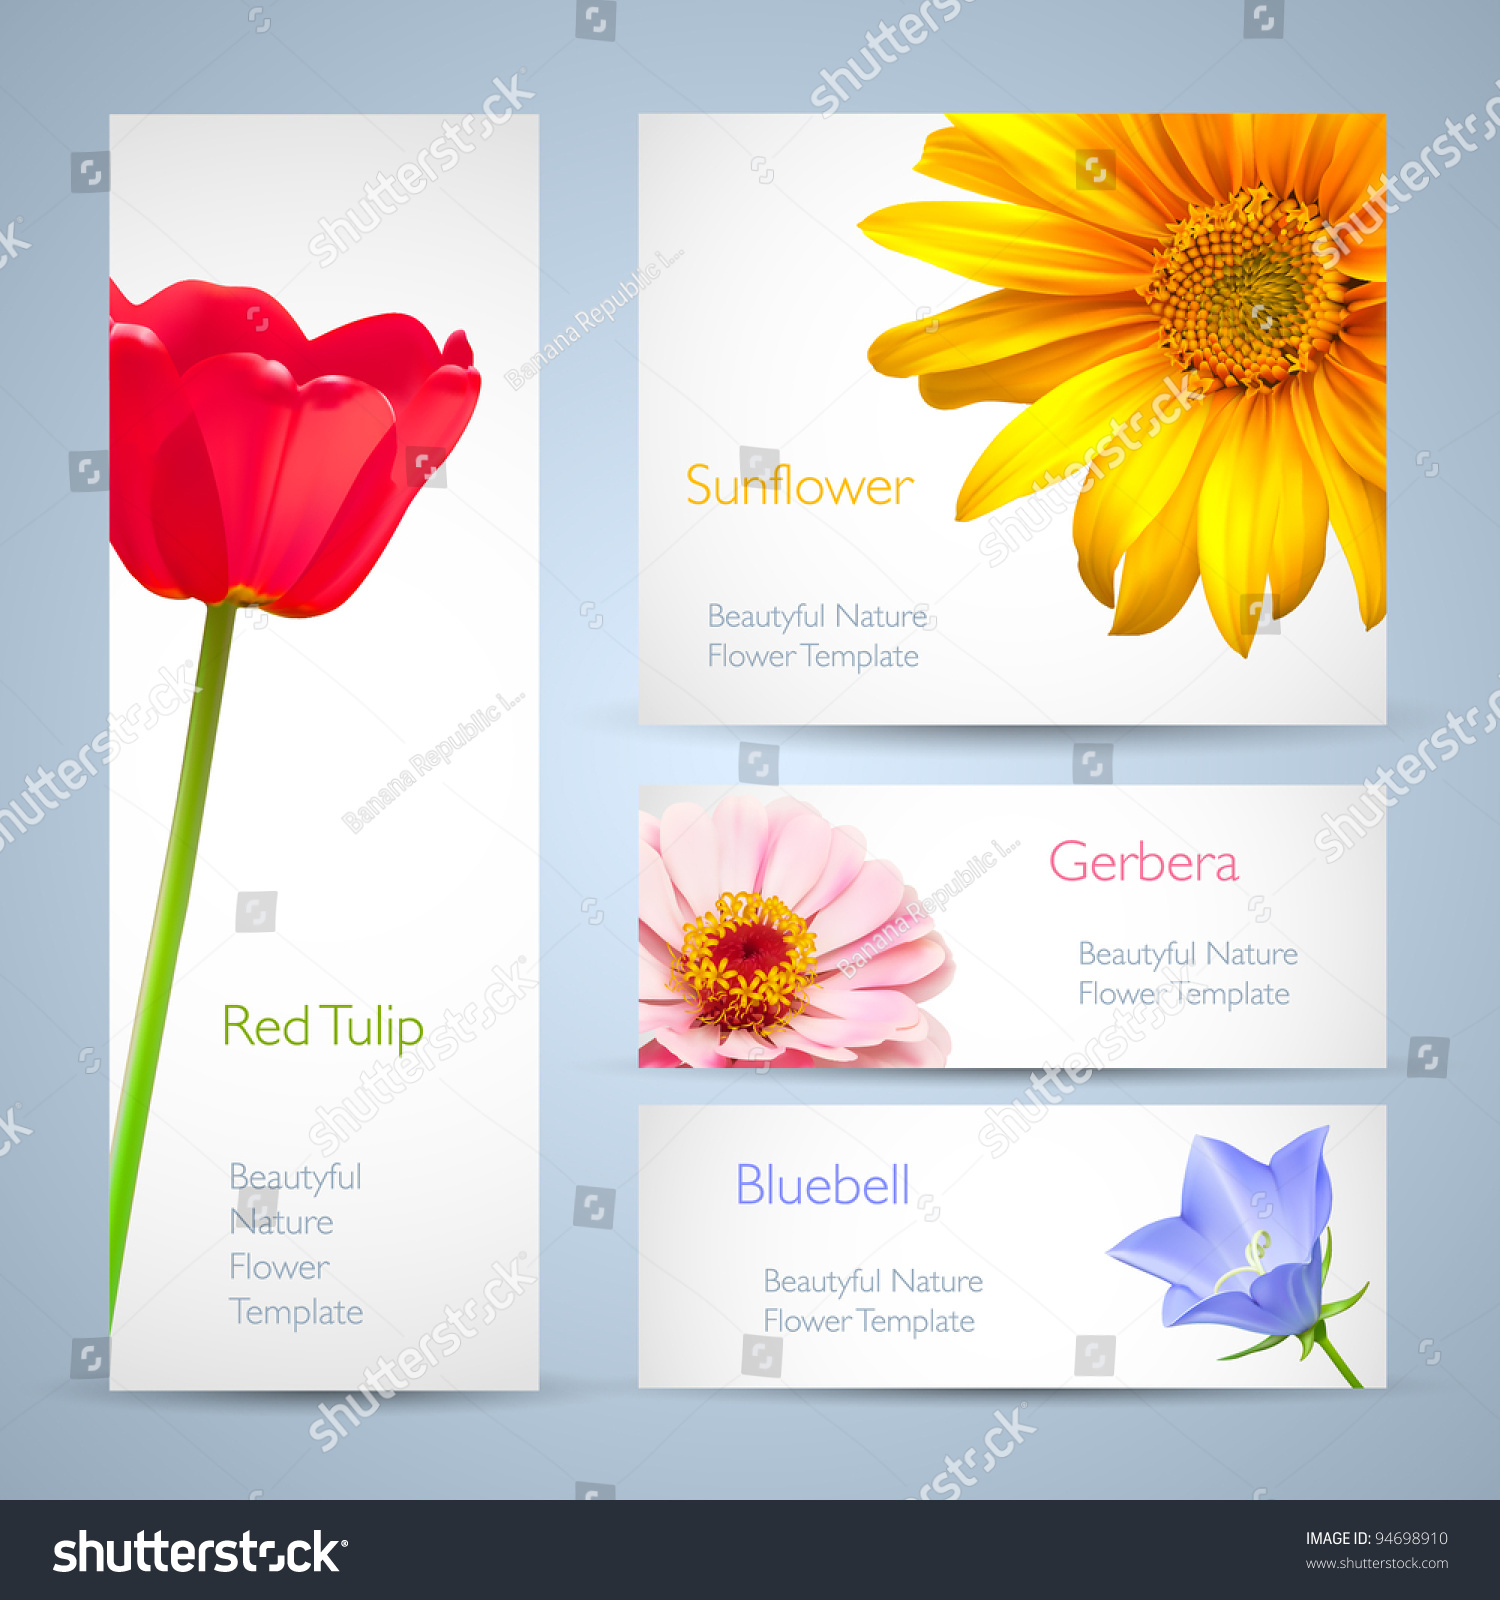 spring flowers invitation brochure template card layout background design for banners stock. Black Bedroom Furniture Sets. Home Design Ideas